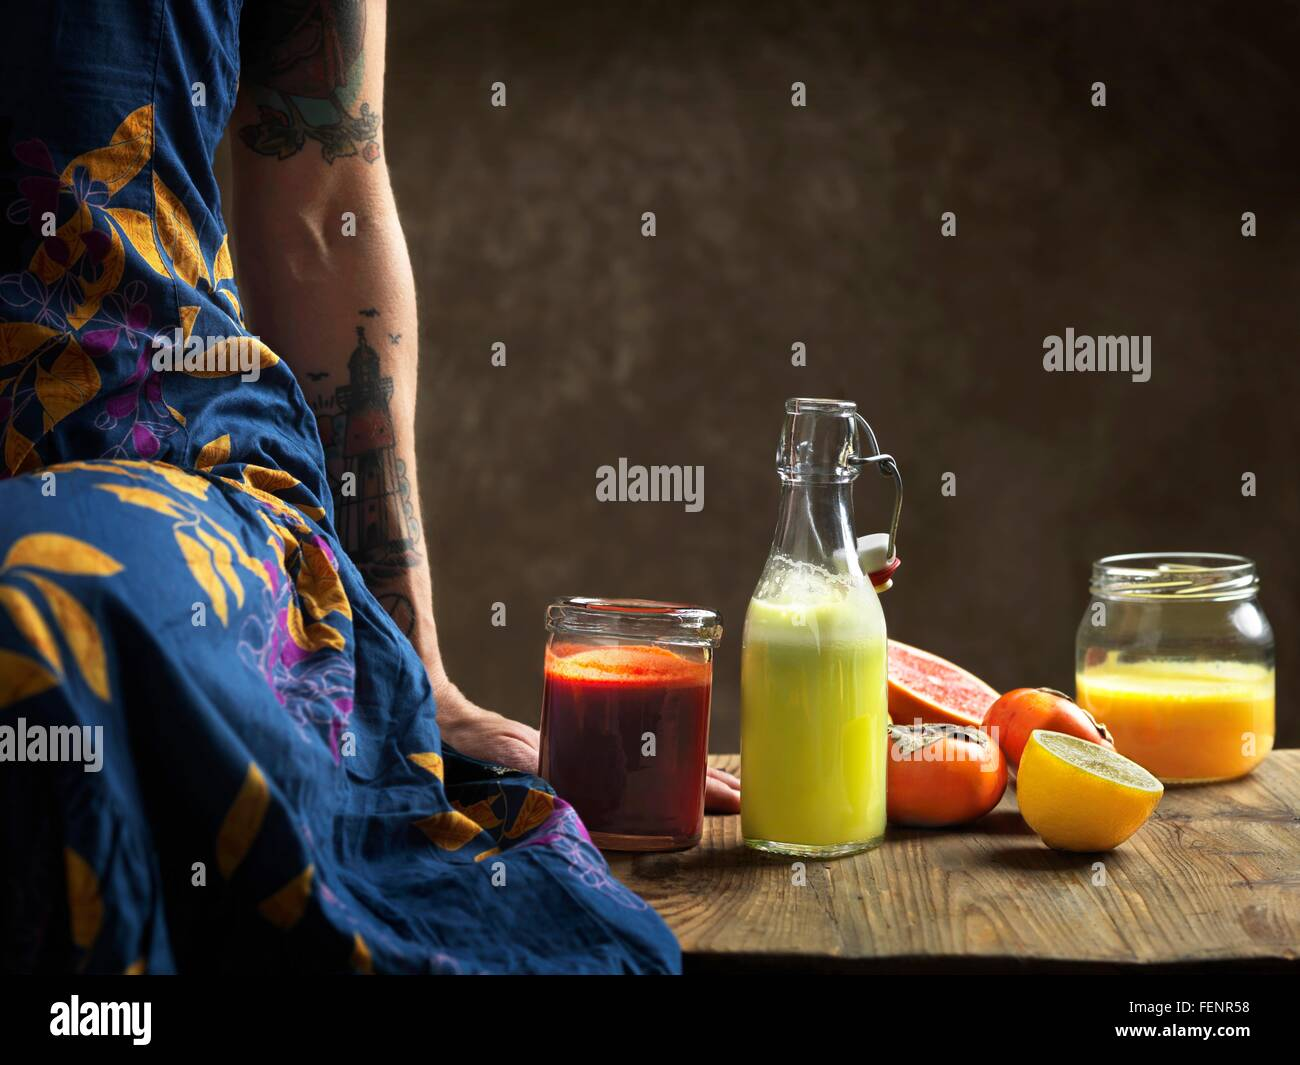 Cropped view of  woman wearing dress sitting on table with raw juices in glass bottle and jars - Stock Image